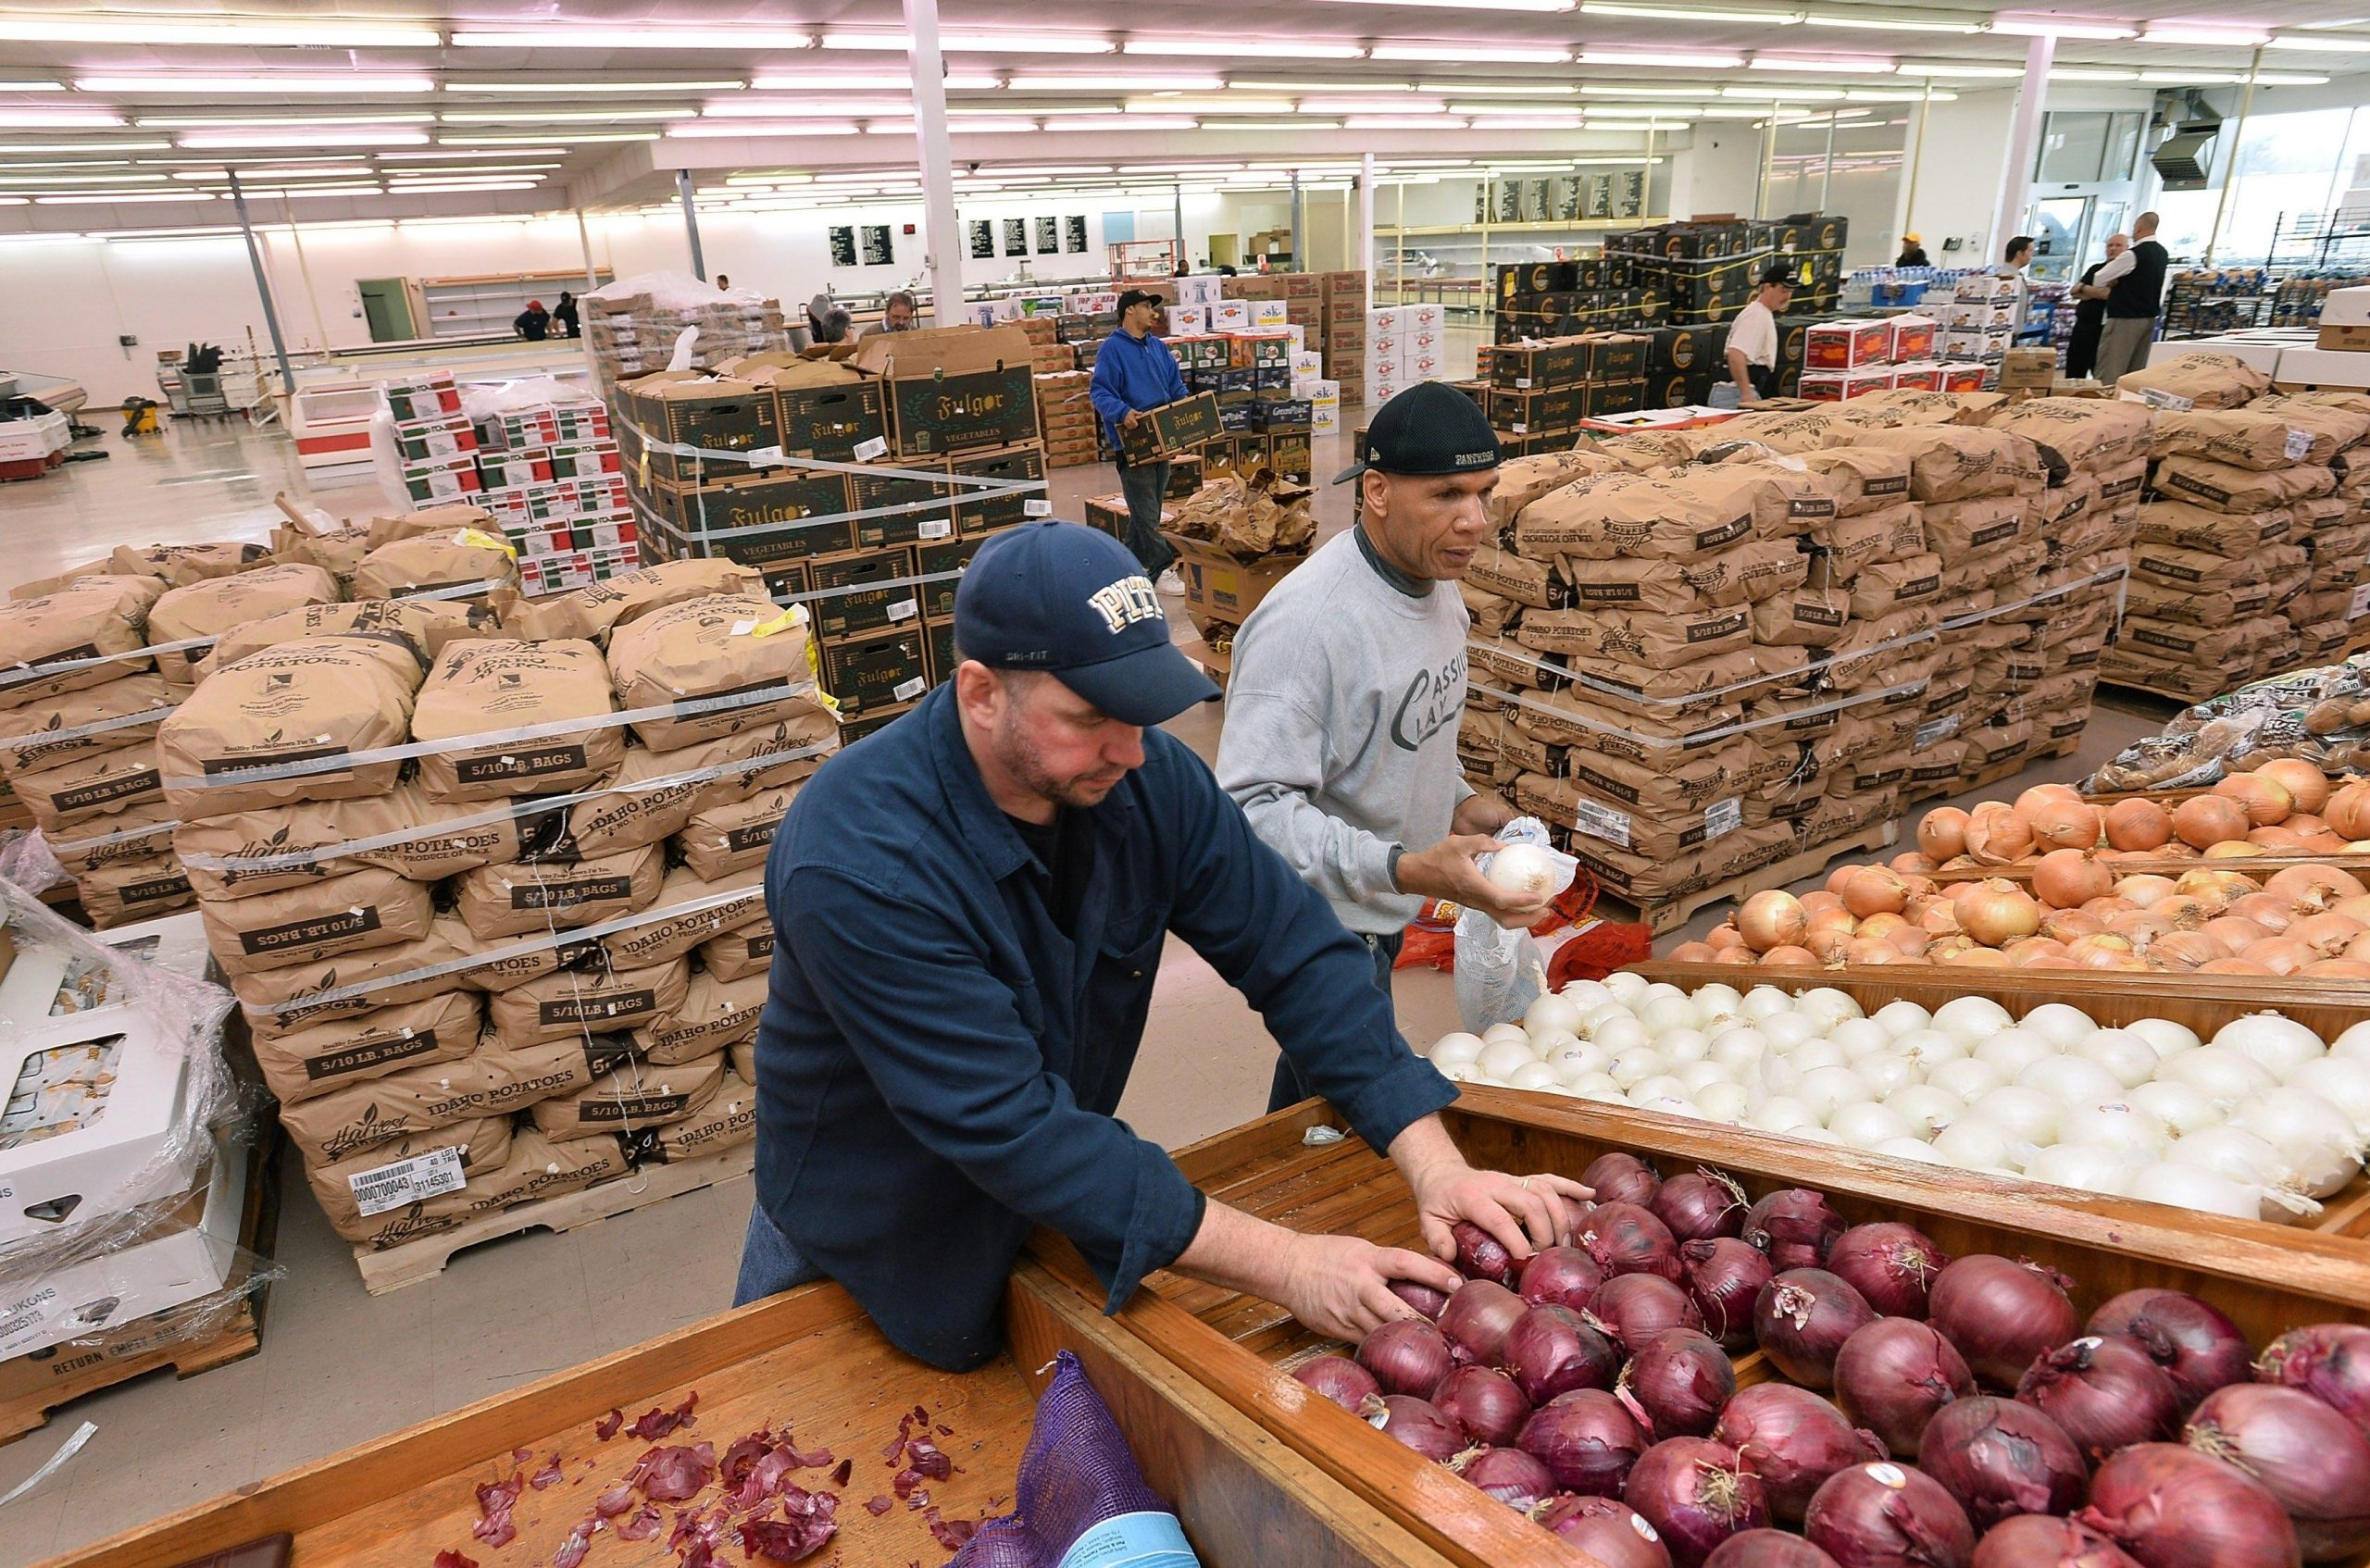 Spc/Erie County Farms: New Store Built On Old Idea - News